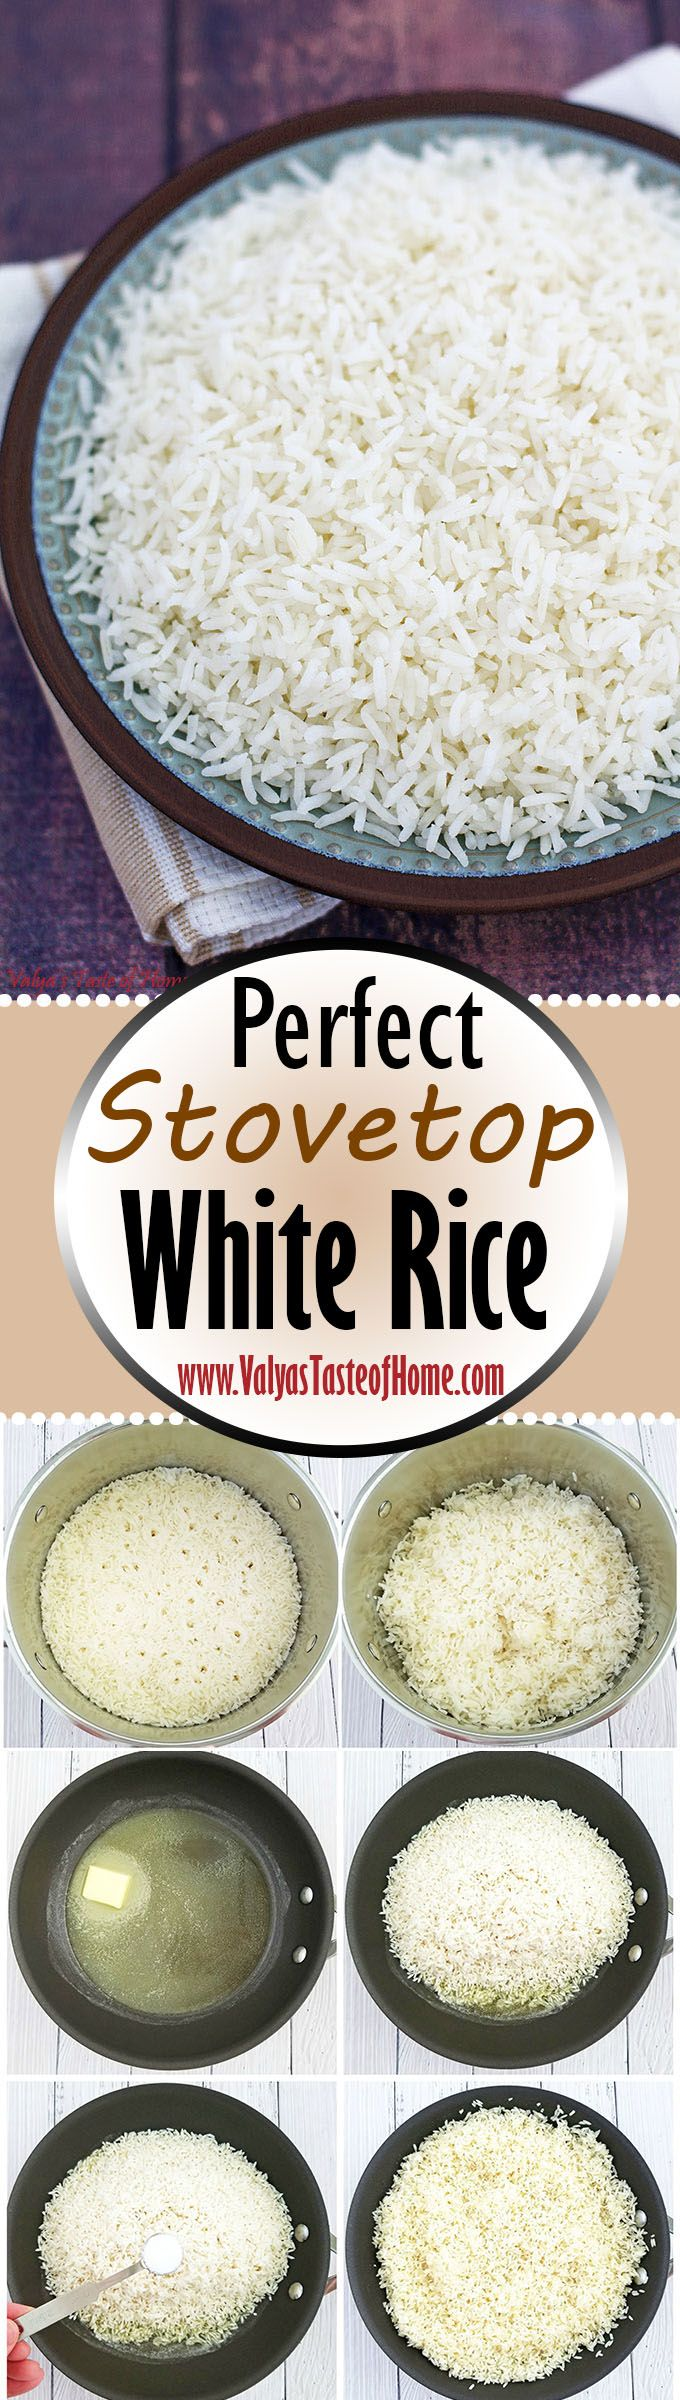 After some tweaking and practice, I nailed the Perfect Stovetop Rice Recipe touch and been cooking rice this way for many years now. Making perfect white rice is actually quite easy once you know a few simple steps that will put a feel-good smile of accomplishment on your face every time you make it. Yep, I'm not kidding, folks! ;) | www.valyastasteofhome.com